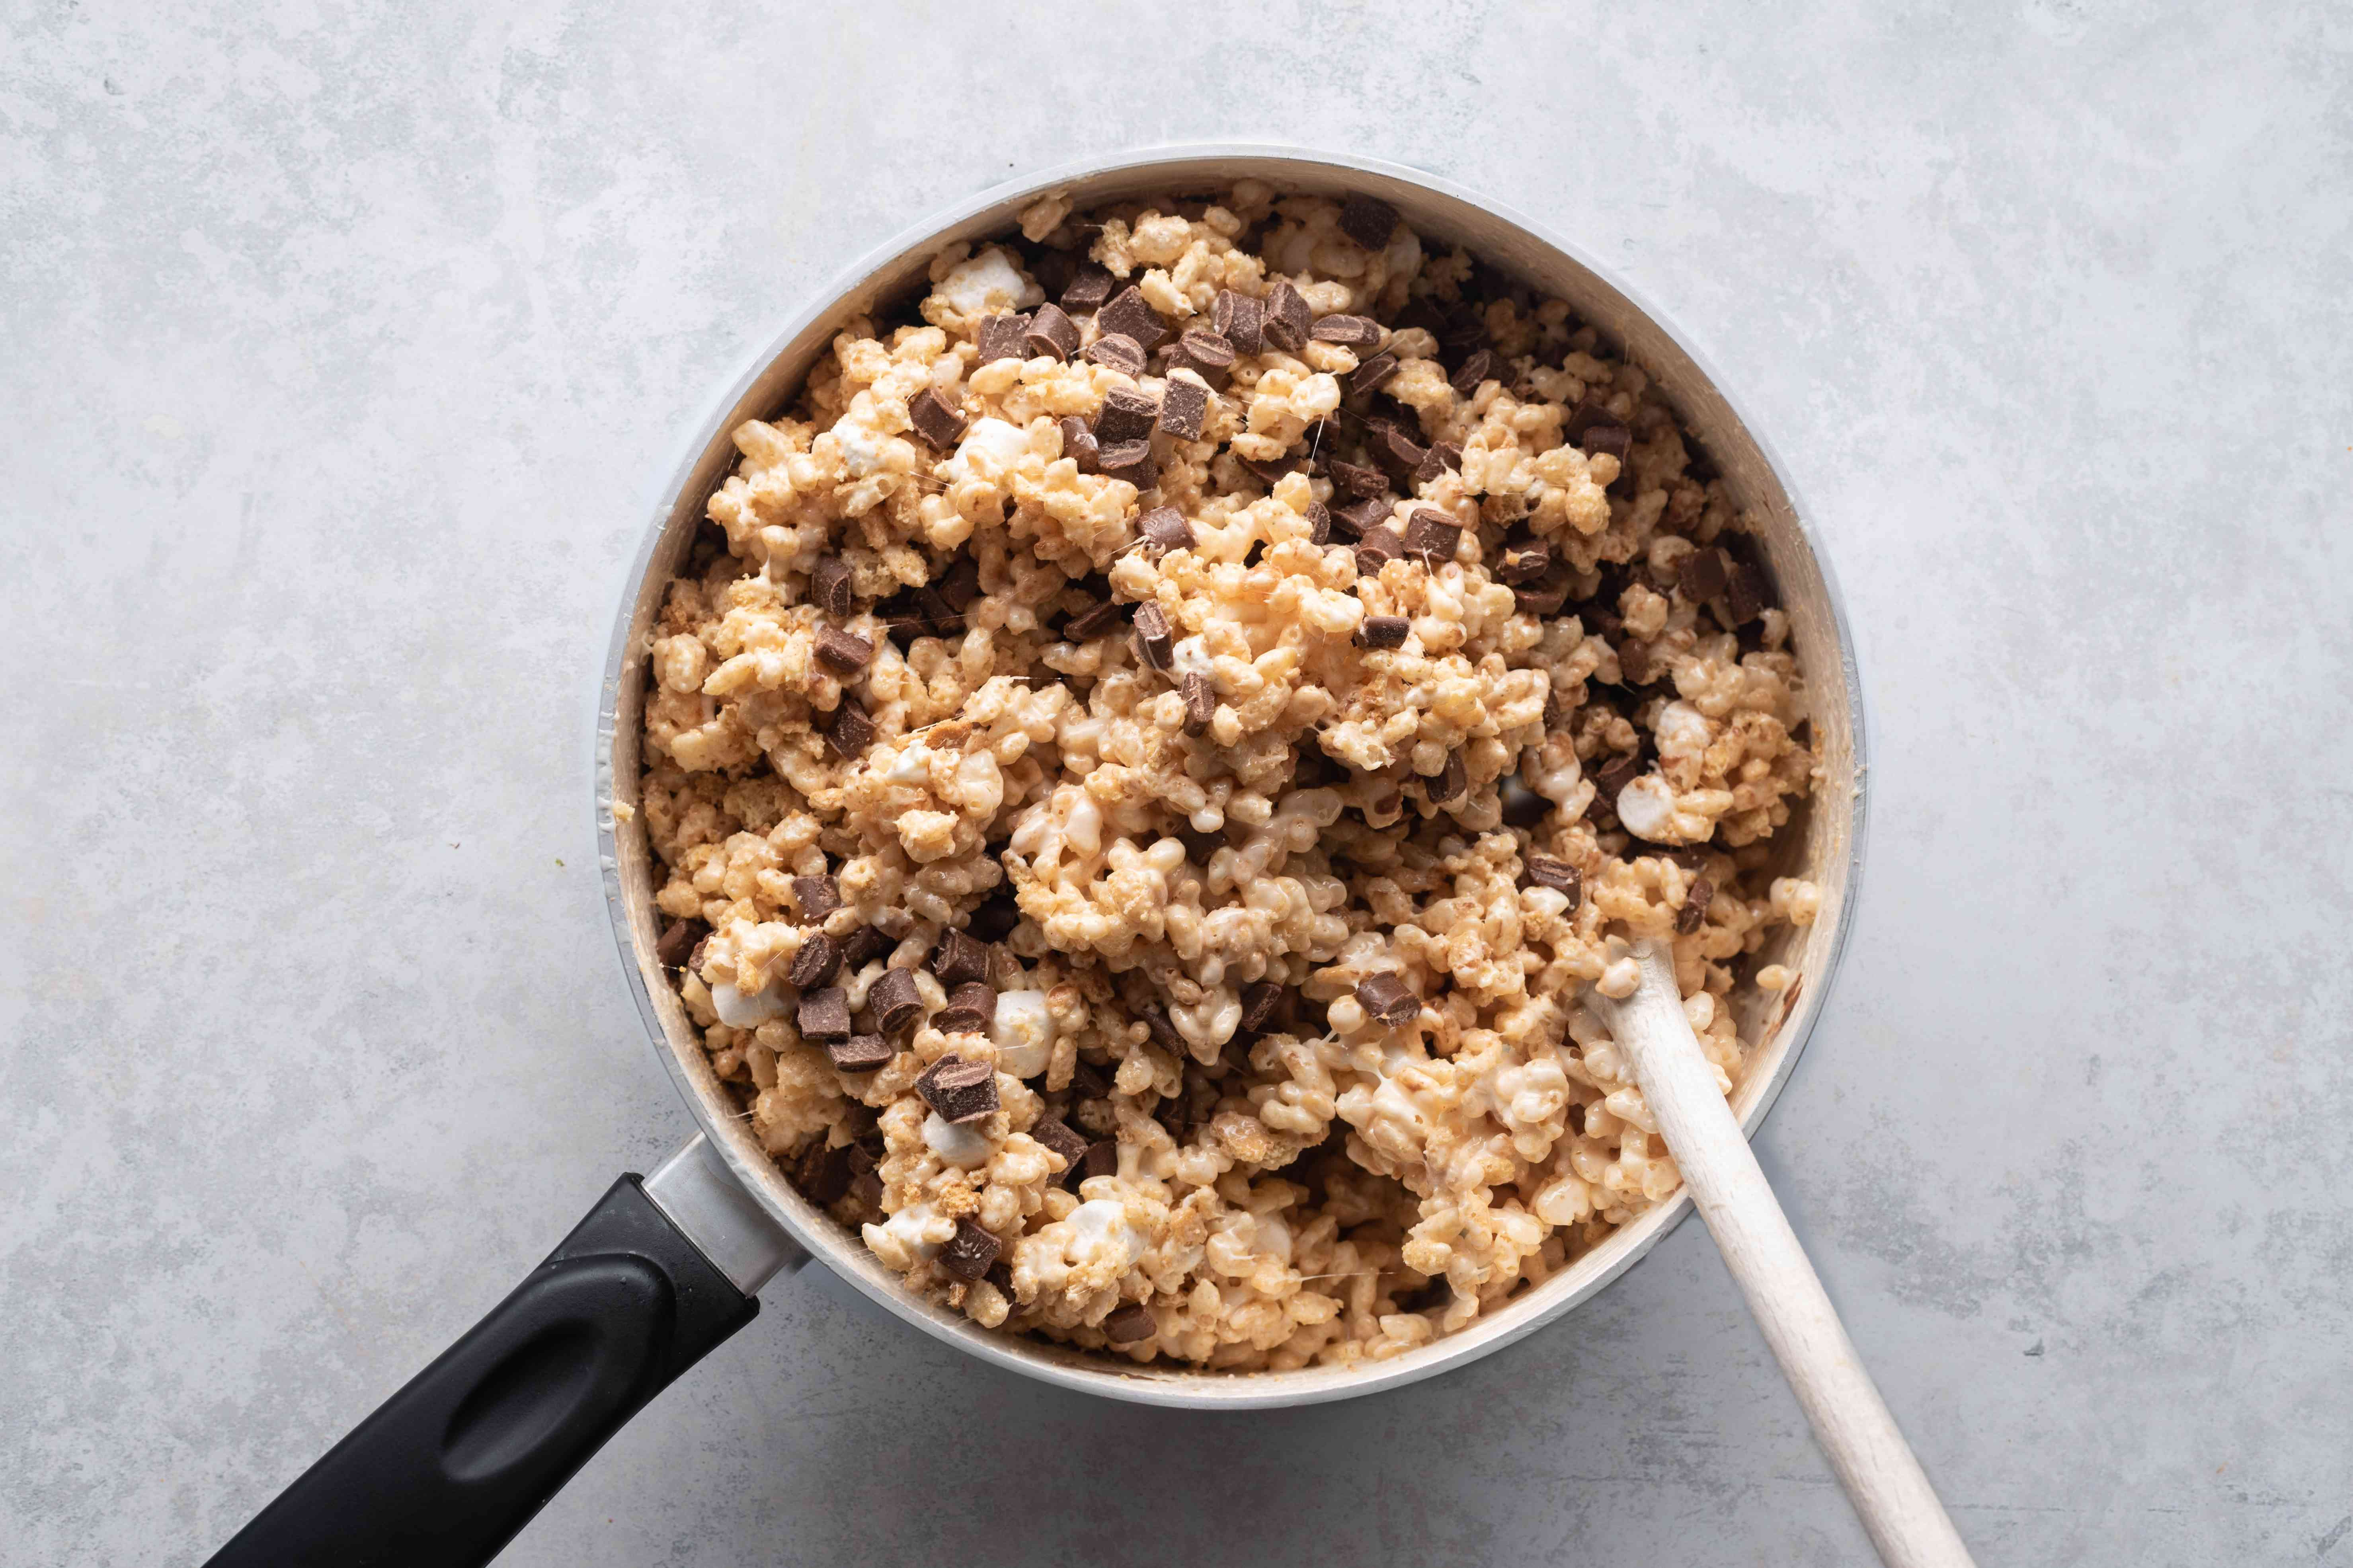 rice krispie mixture with chocolate pieces in a pan